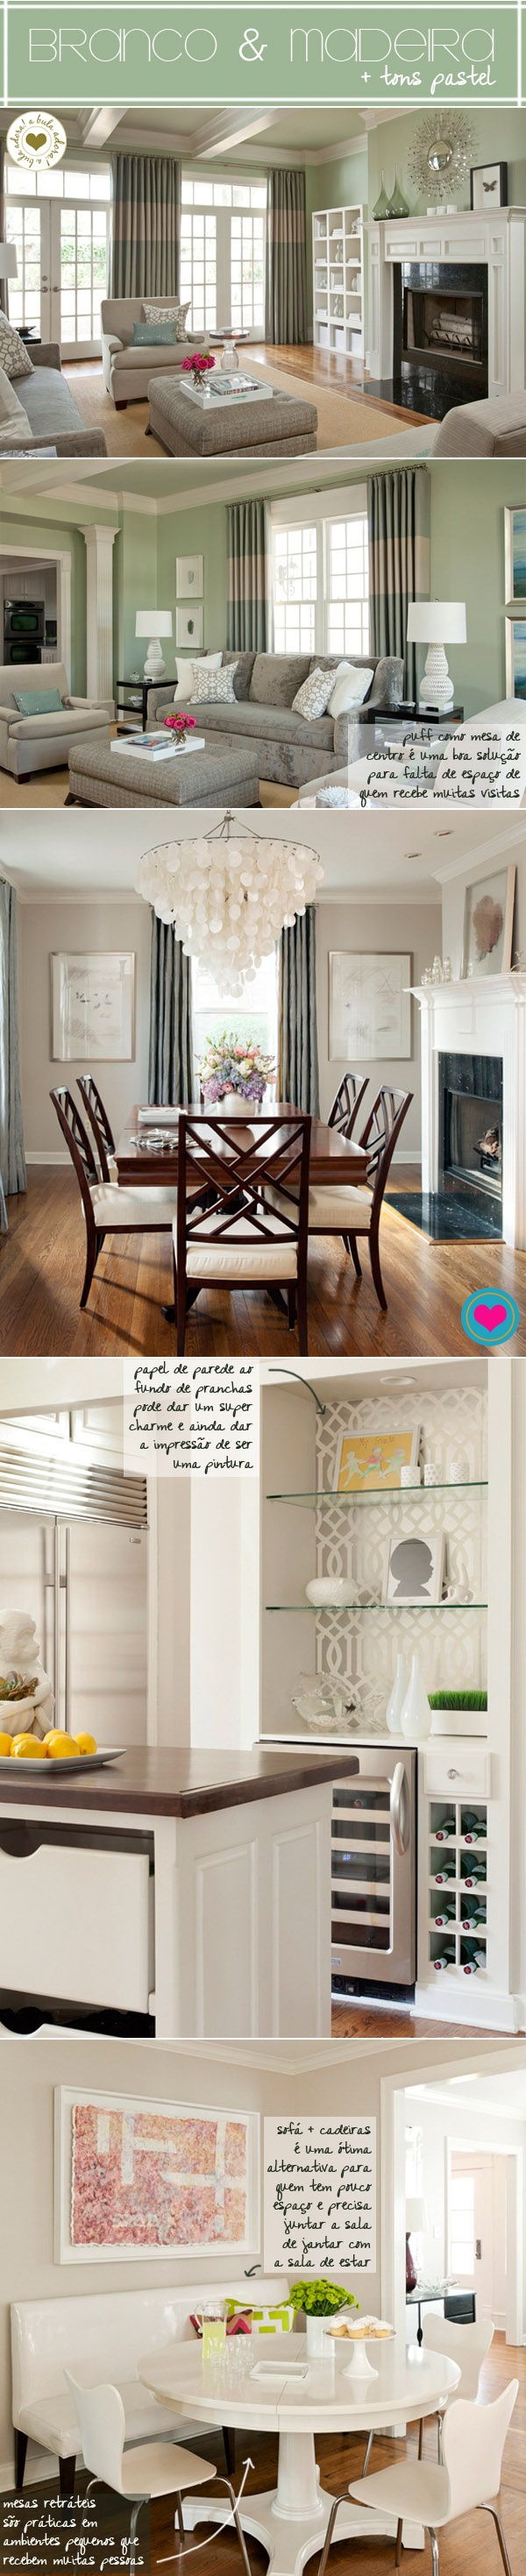 best feng shui images on pinterest feng shui the good and for